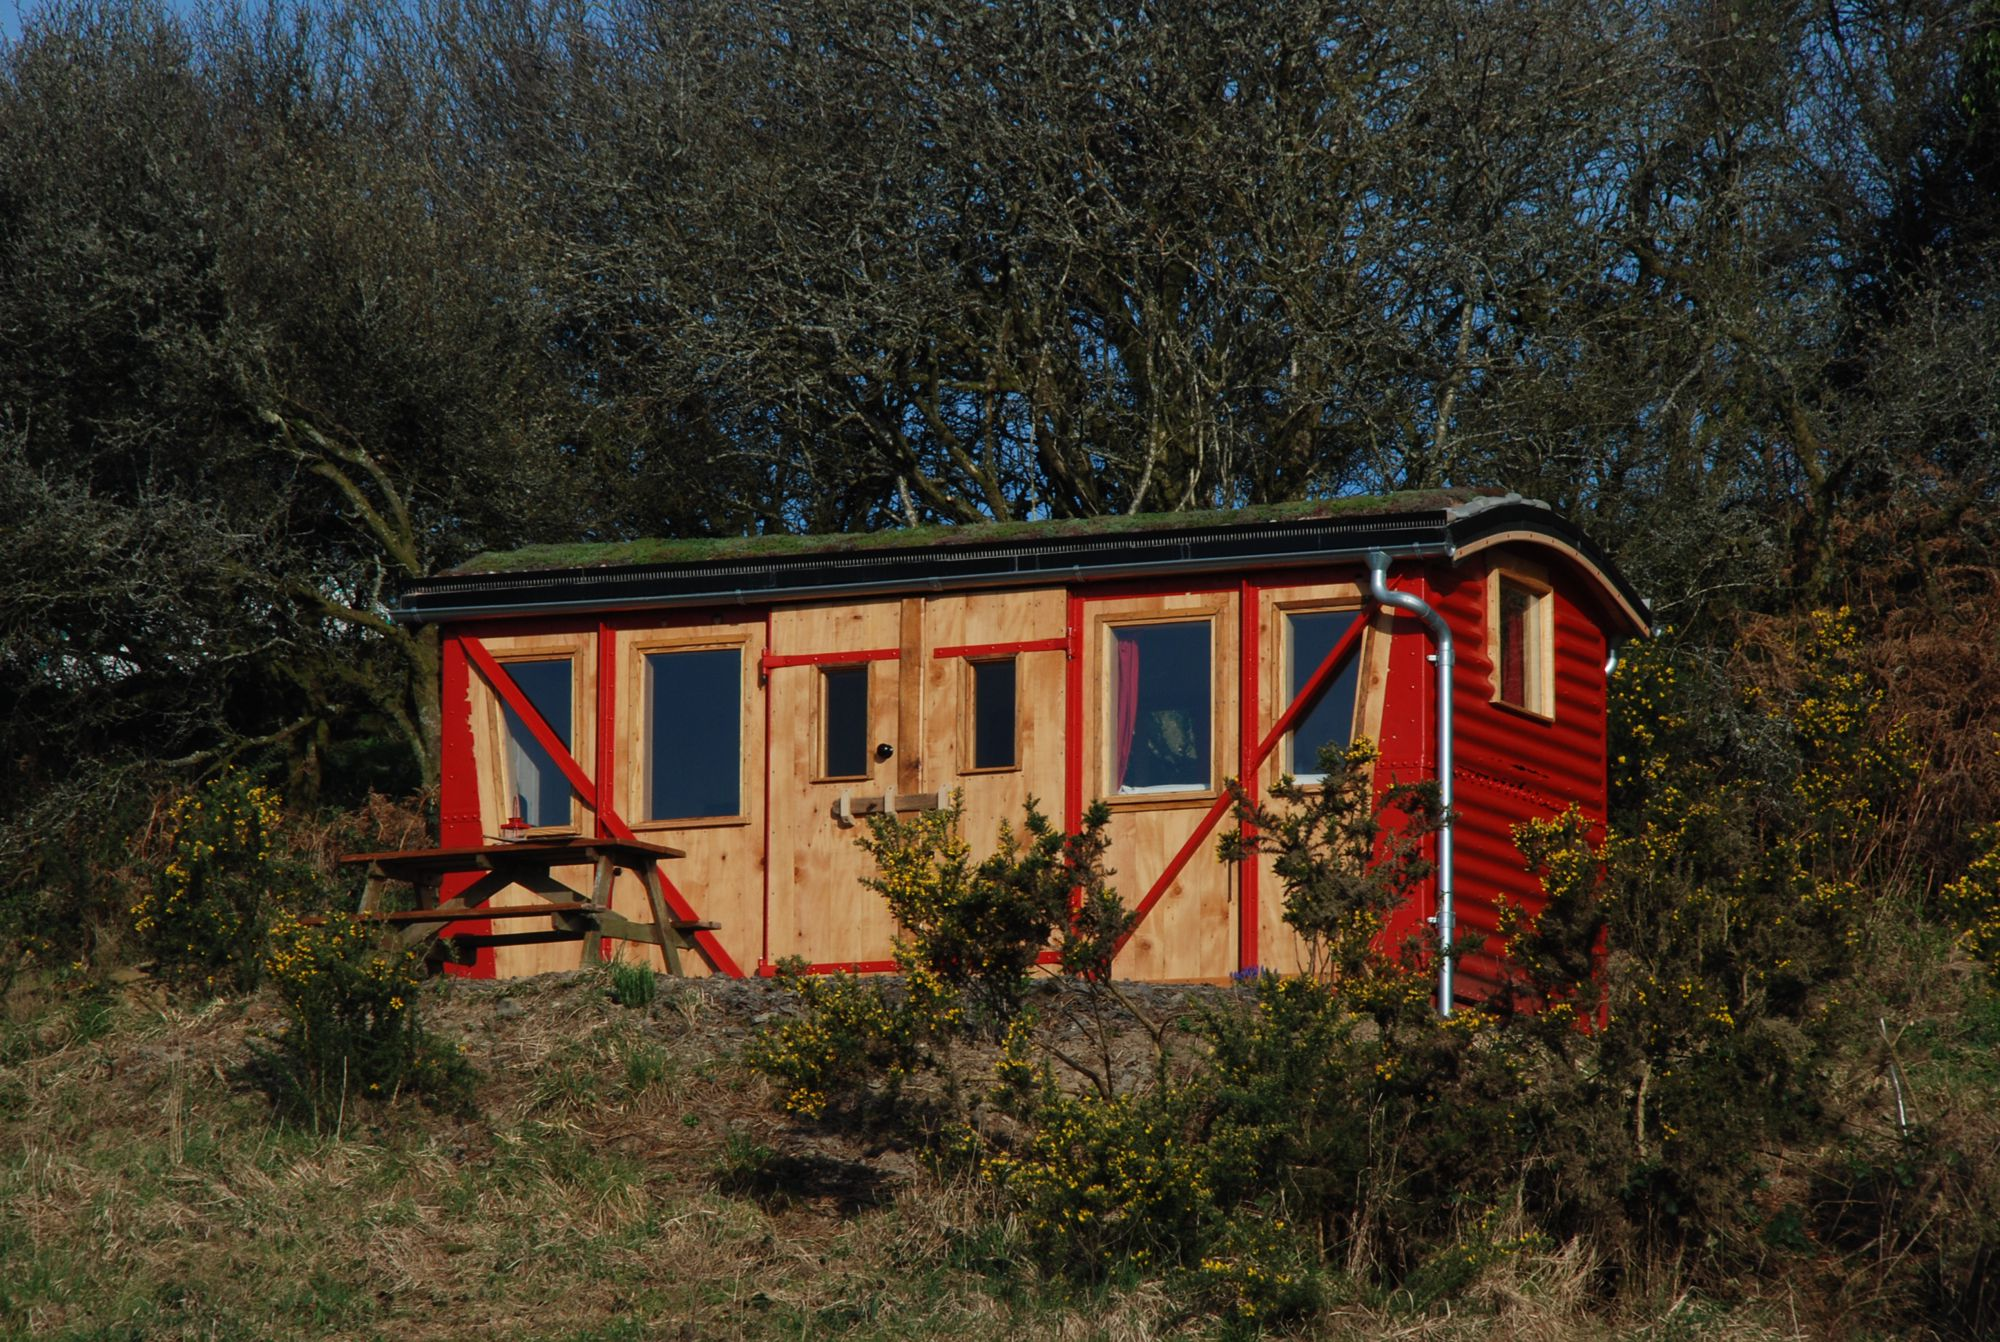 The Train Carriage At The Yurt Farm Cool Camping